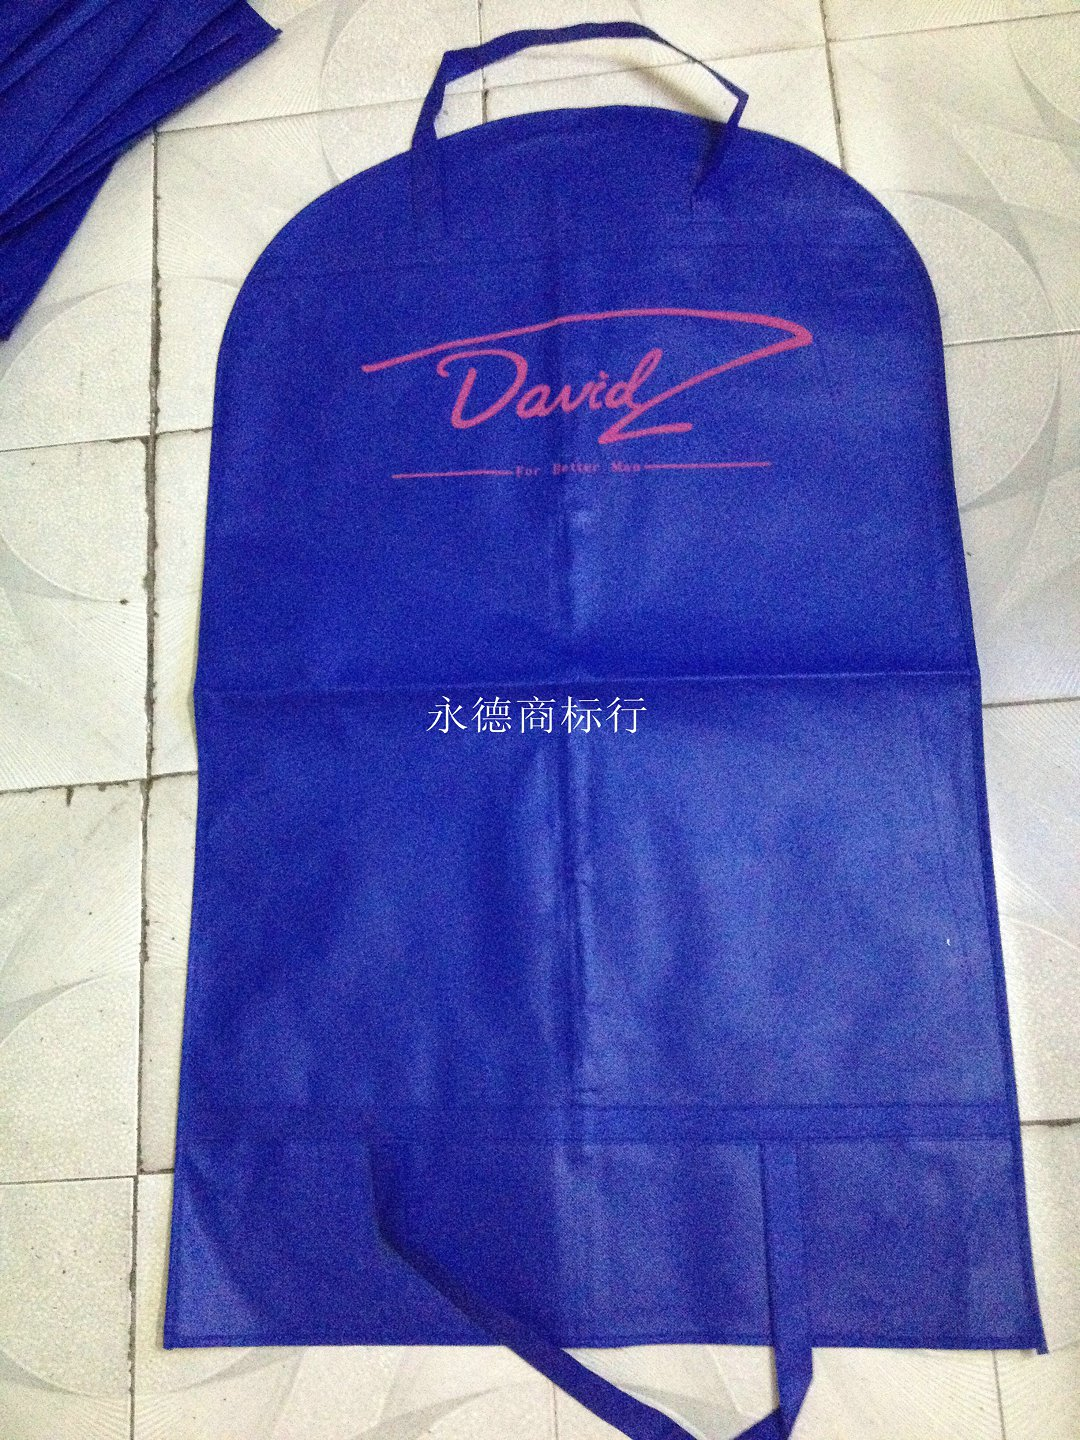 Гаджет  [major] custom non-woven non-woven dust cover custom-made suit sets button suit bag dust bag None Изготовление под заказ